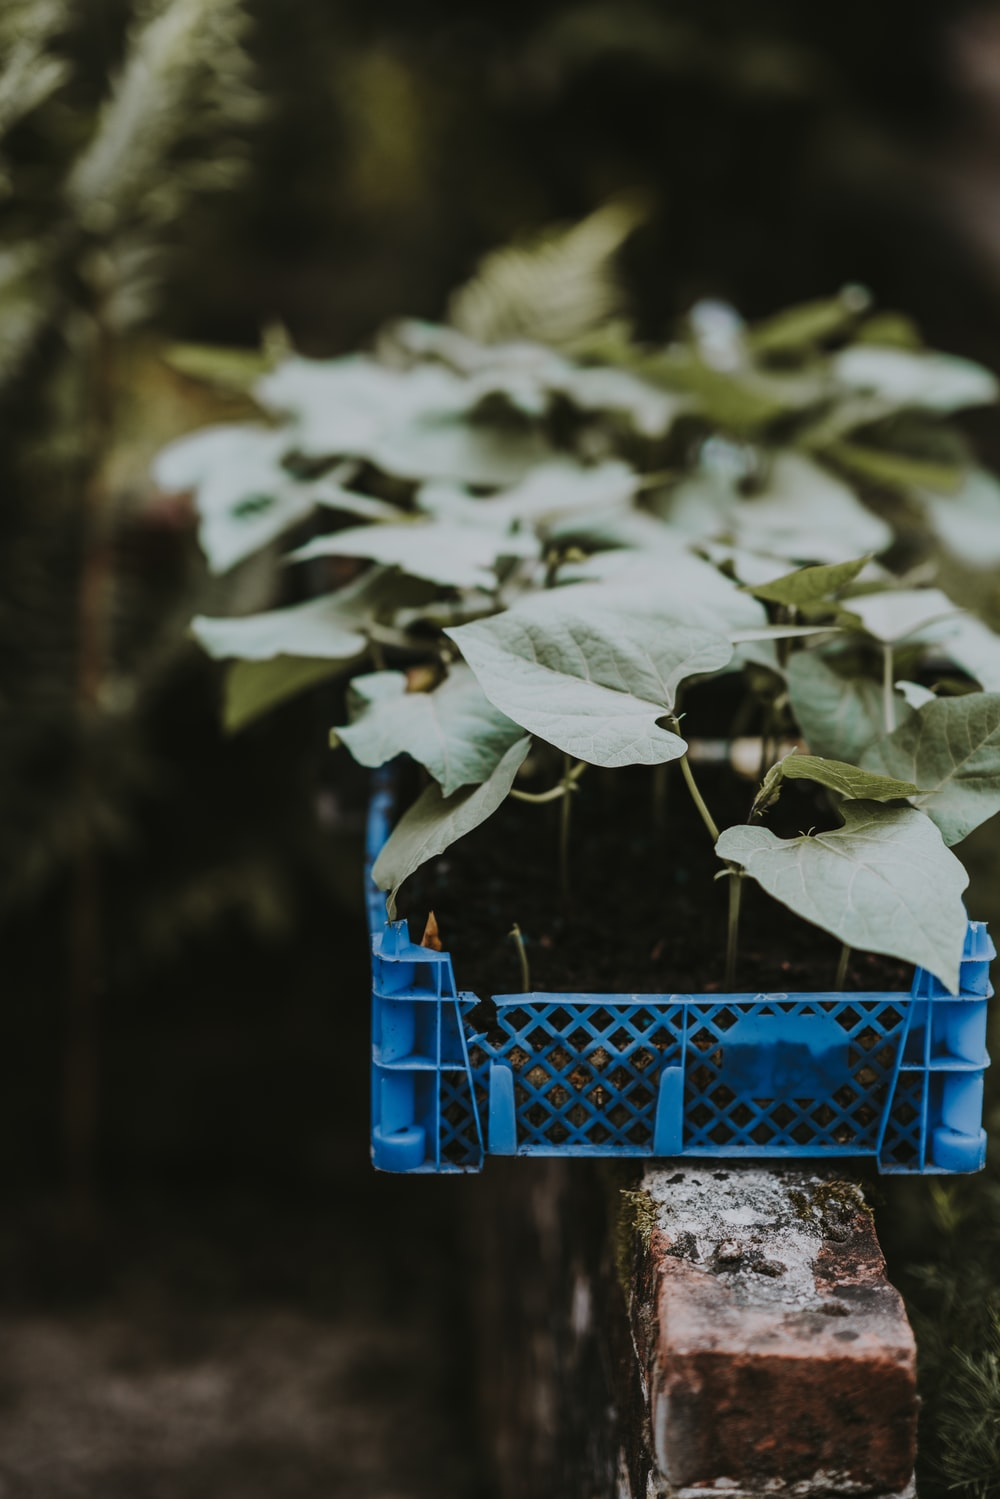 green leafed plant in crate